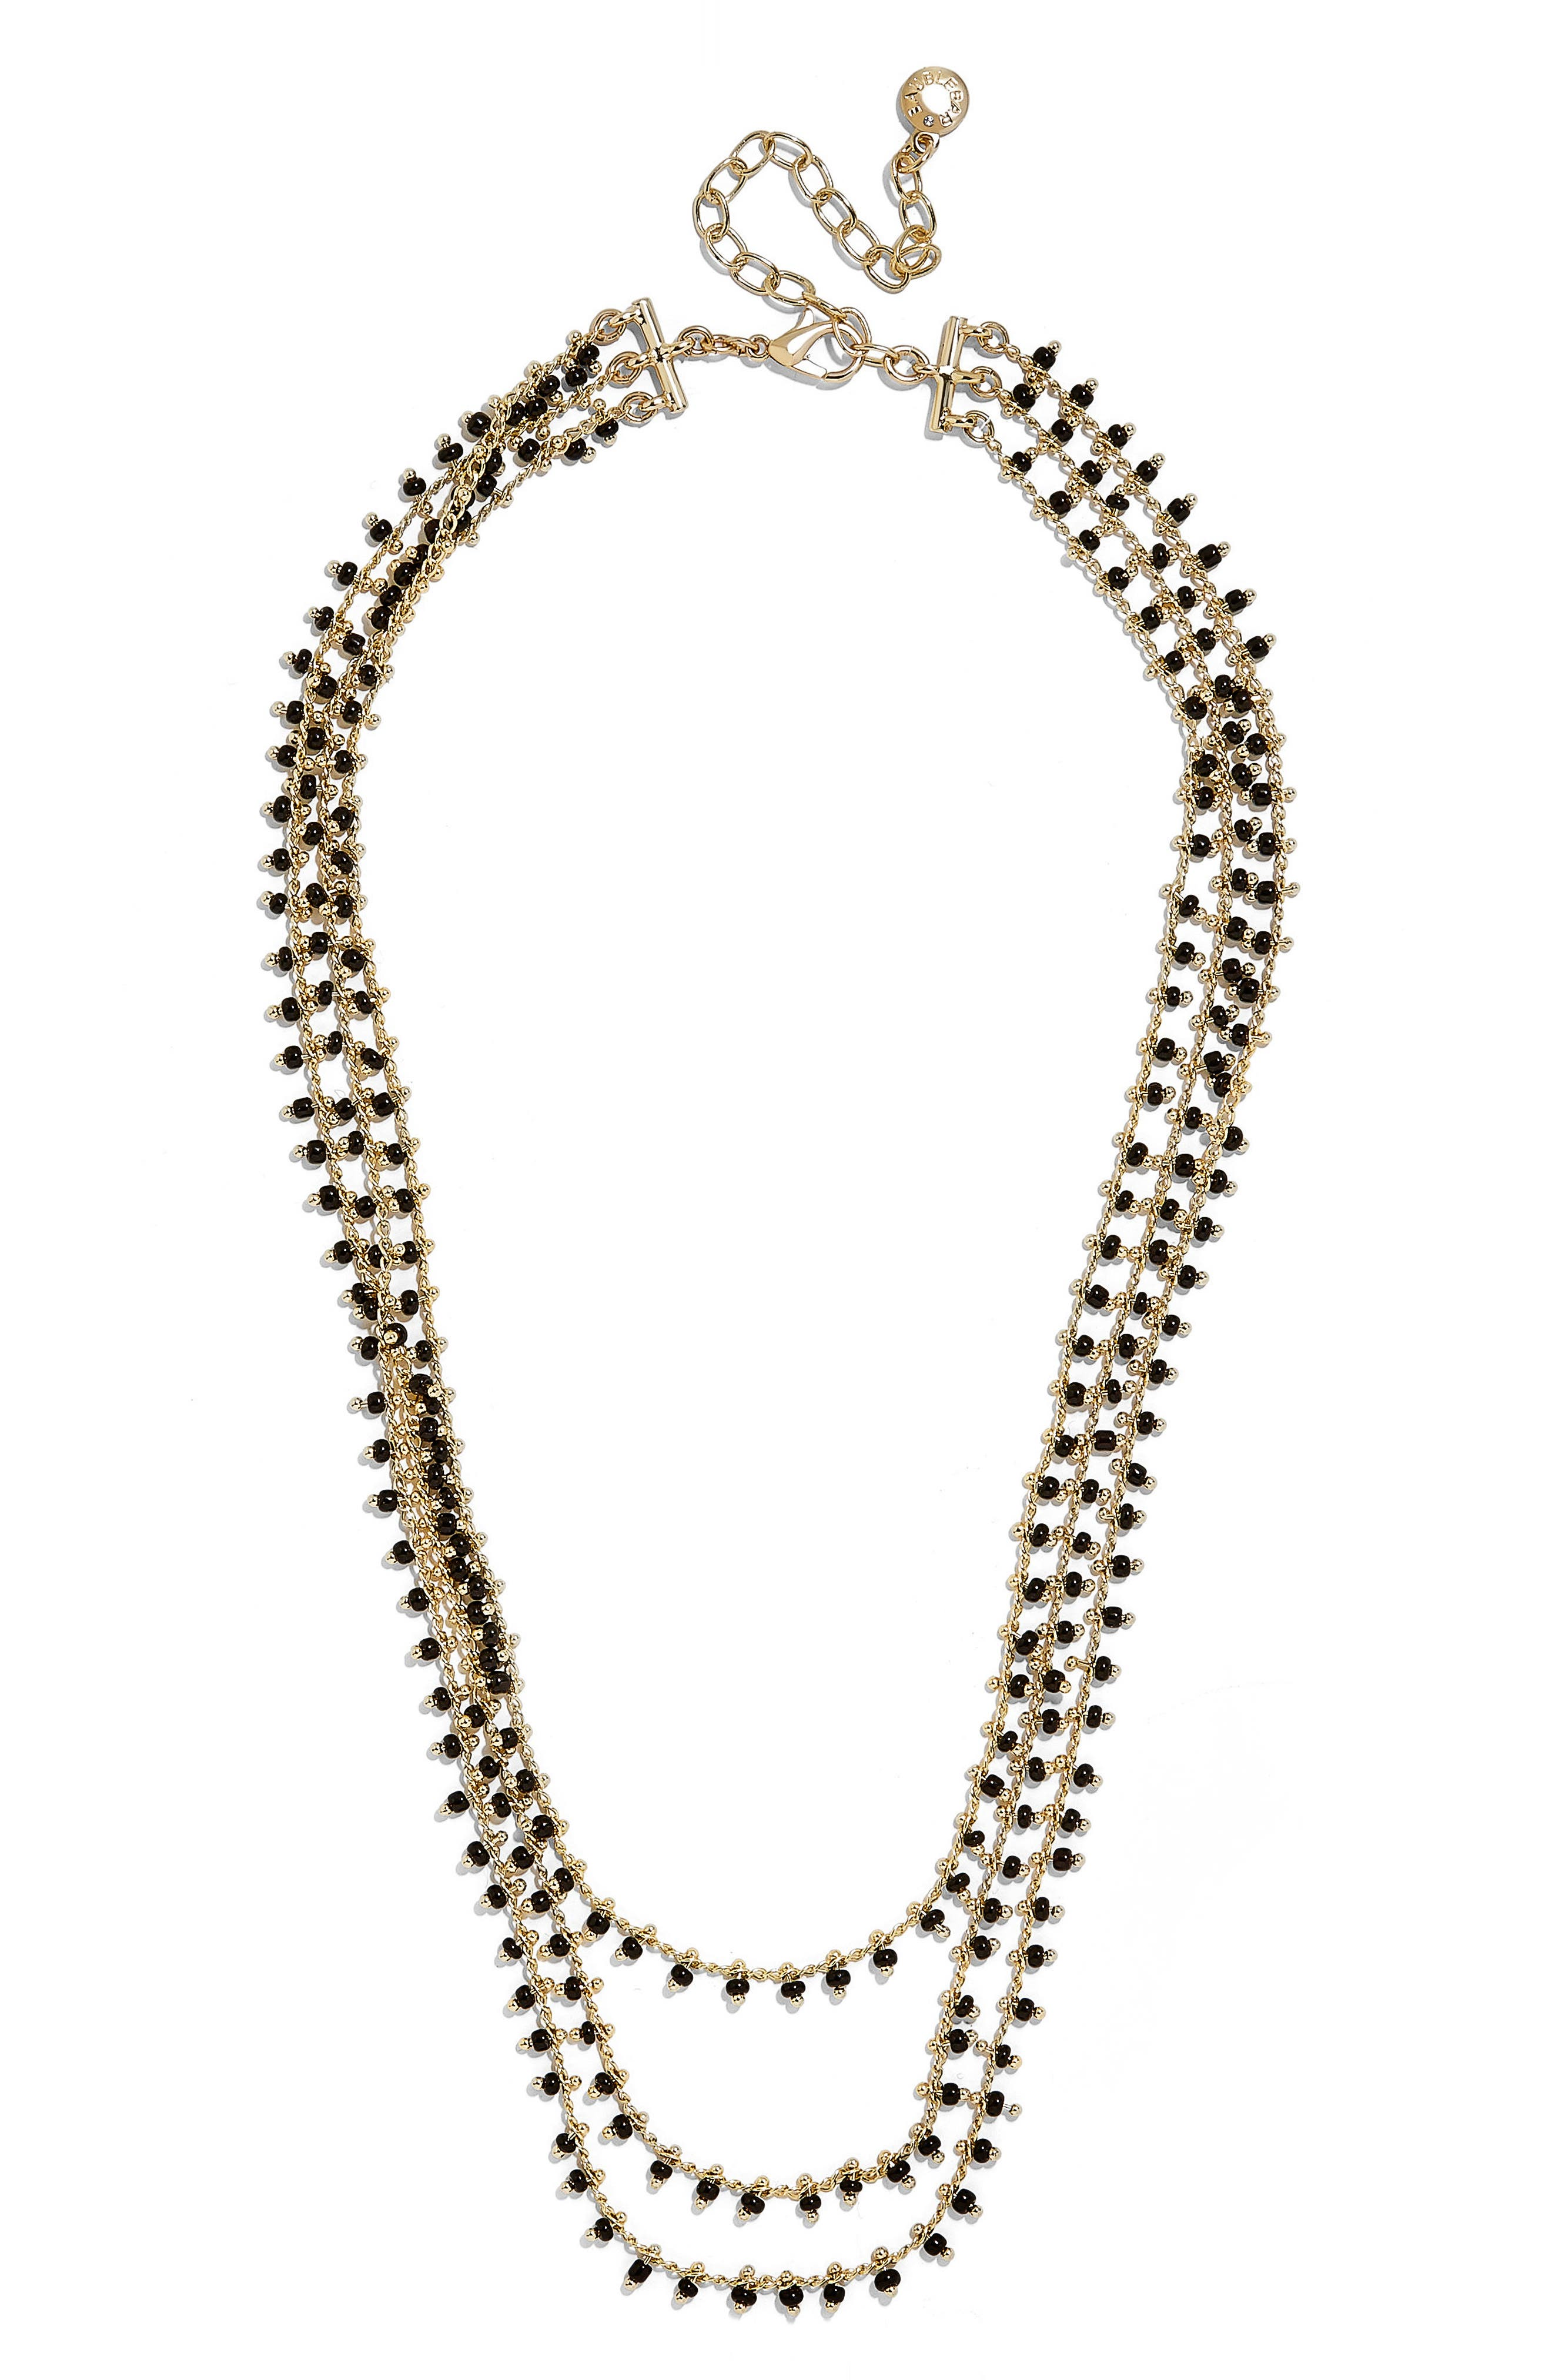 Kirrali Beaded Chain Necklace,                         Main,                         color, Black